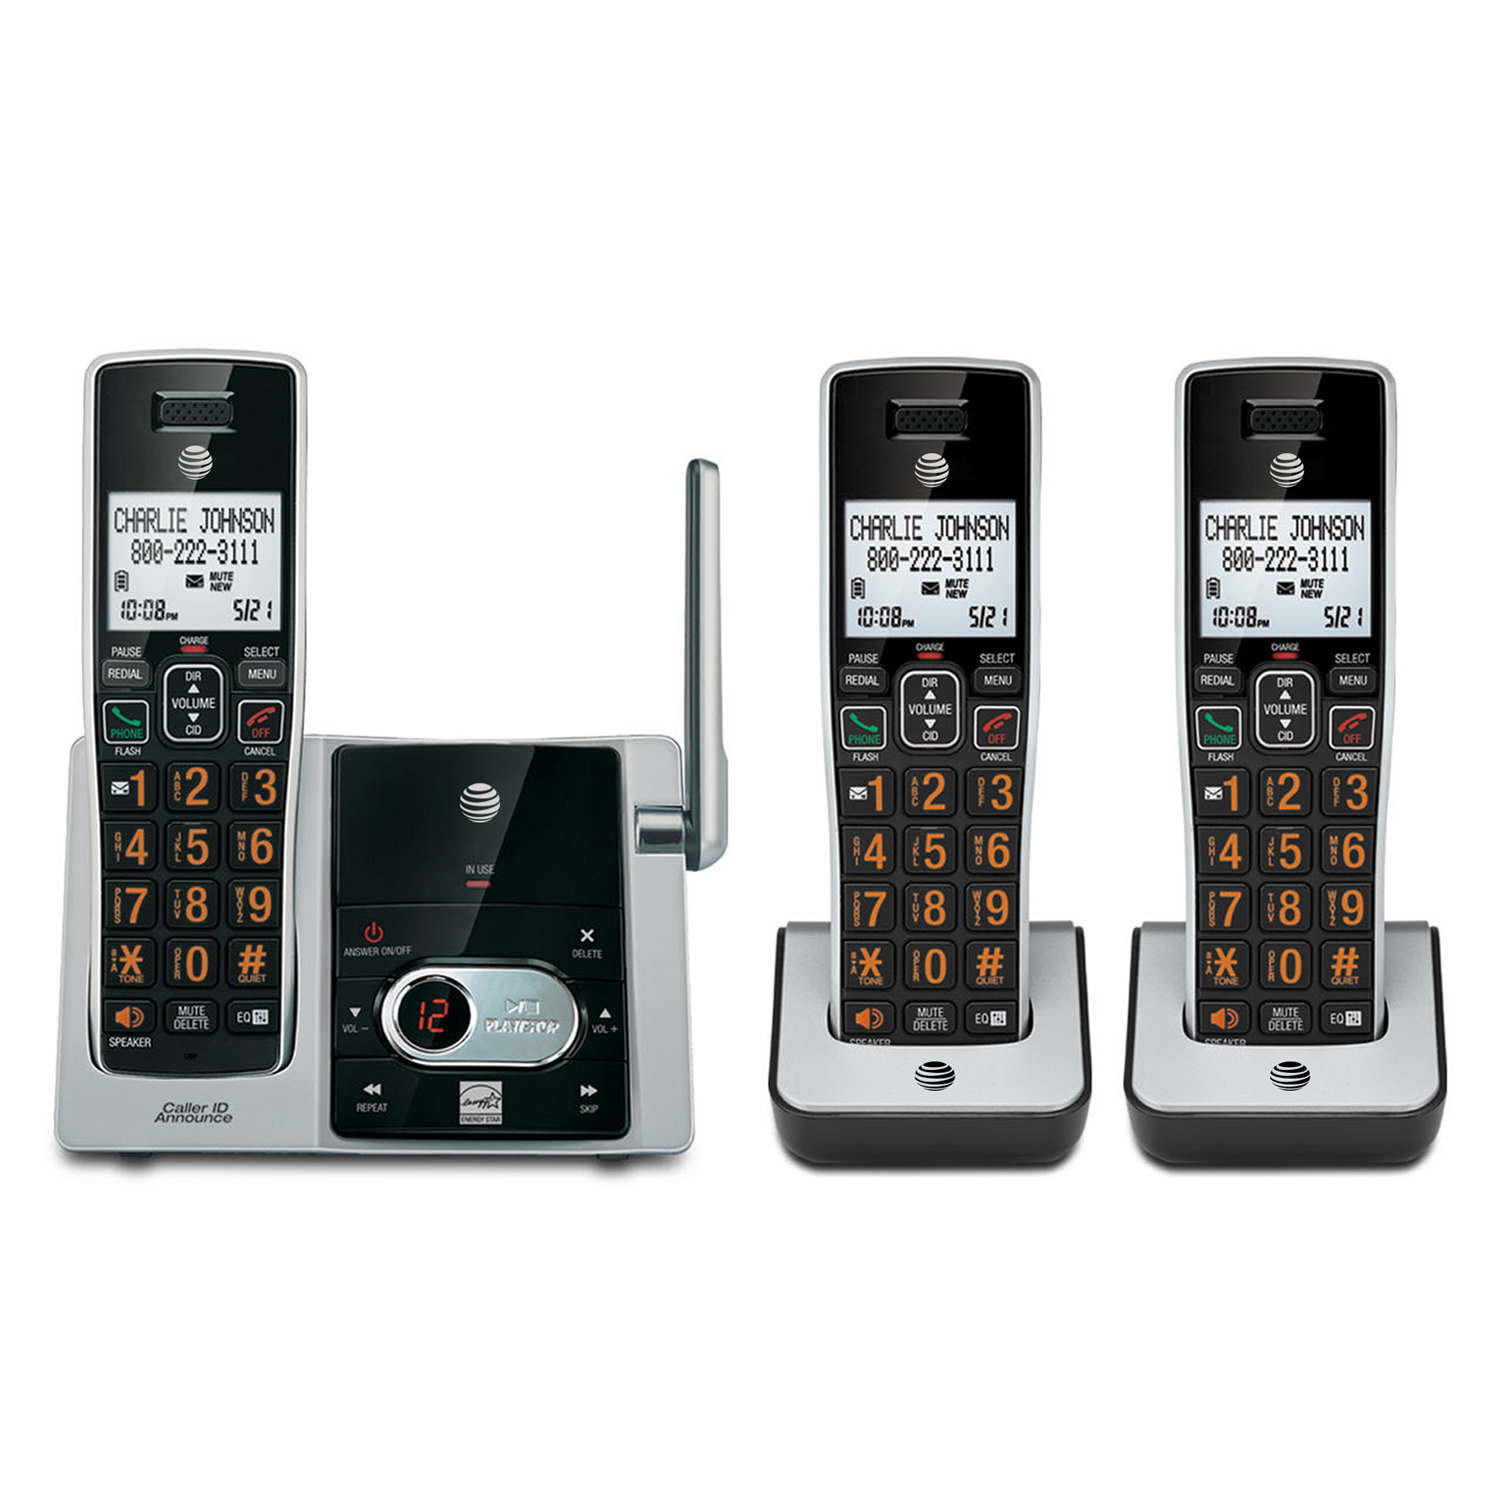 AT&T ATTCL83213 Cordless Answering System With Dual Caller ID/Call Waiting (2-Handset System)